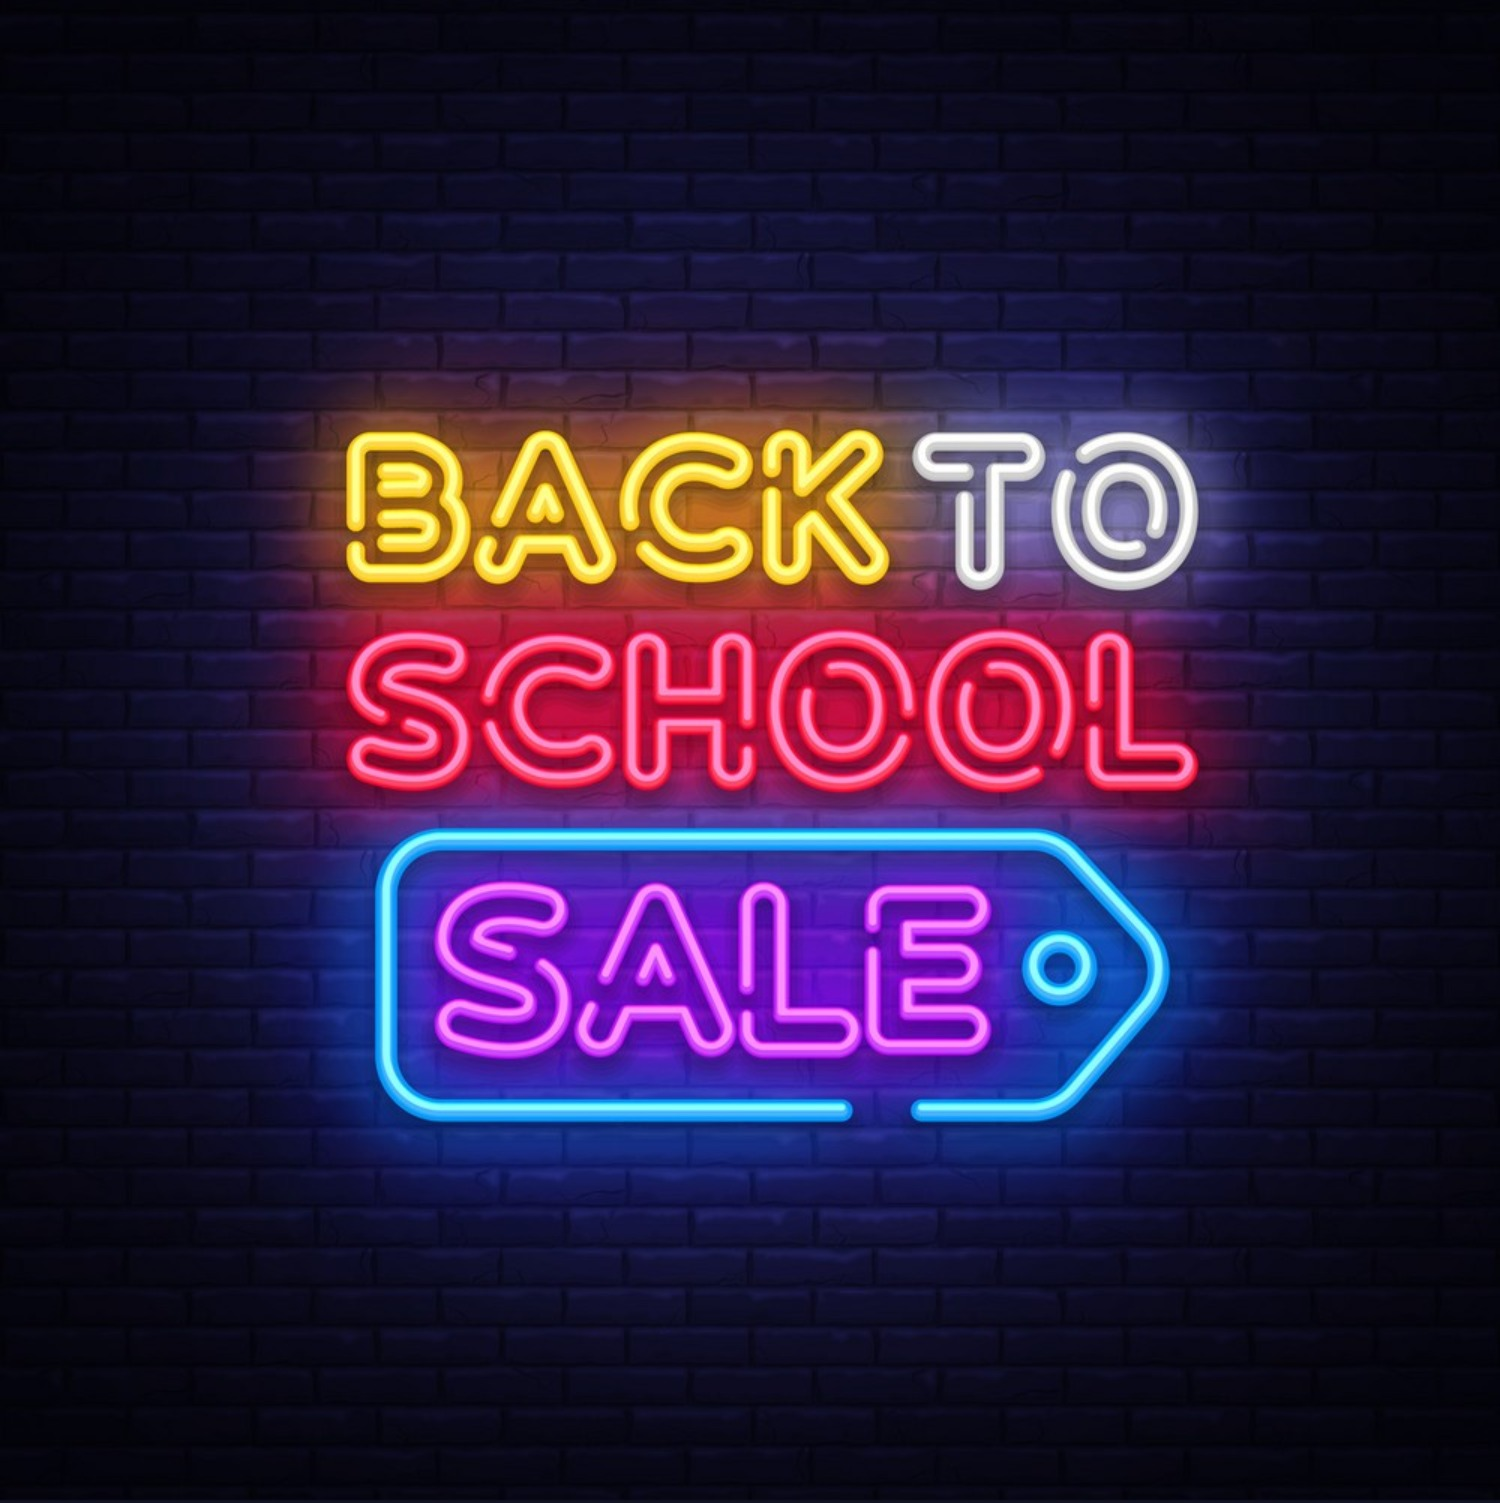 Back to School Clearance Sale